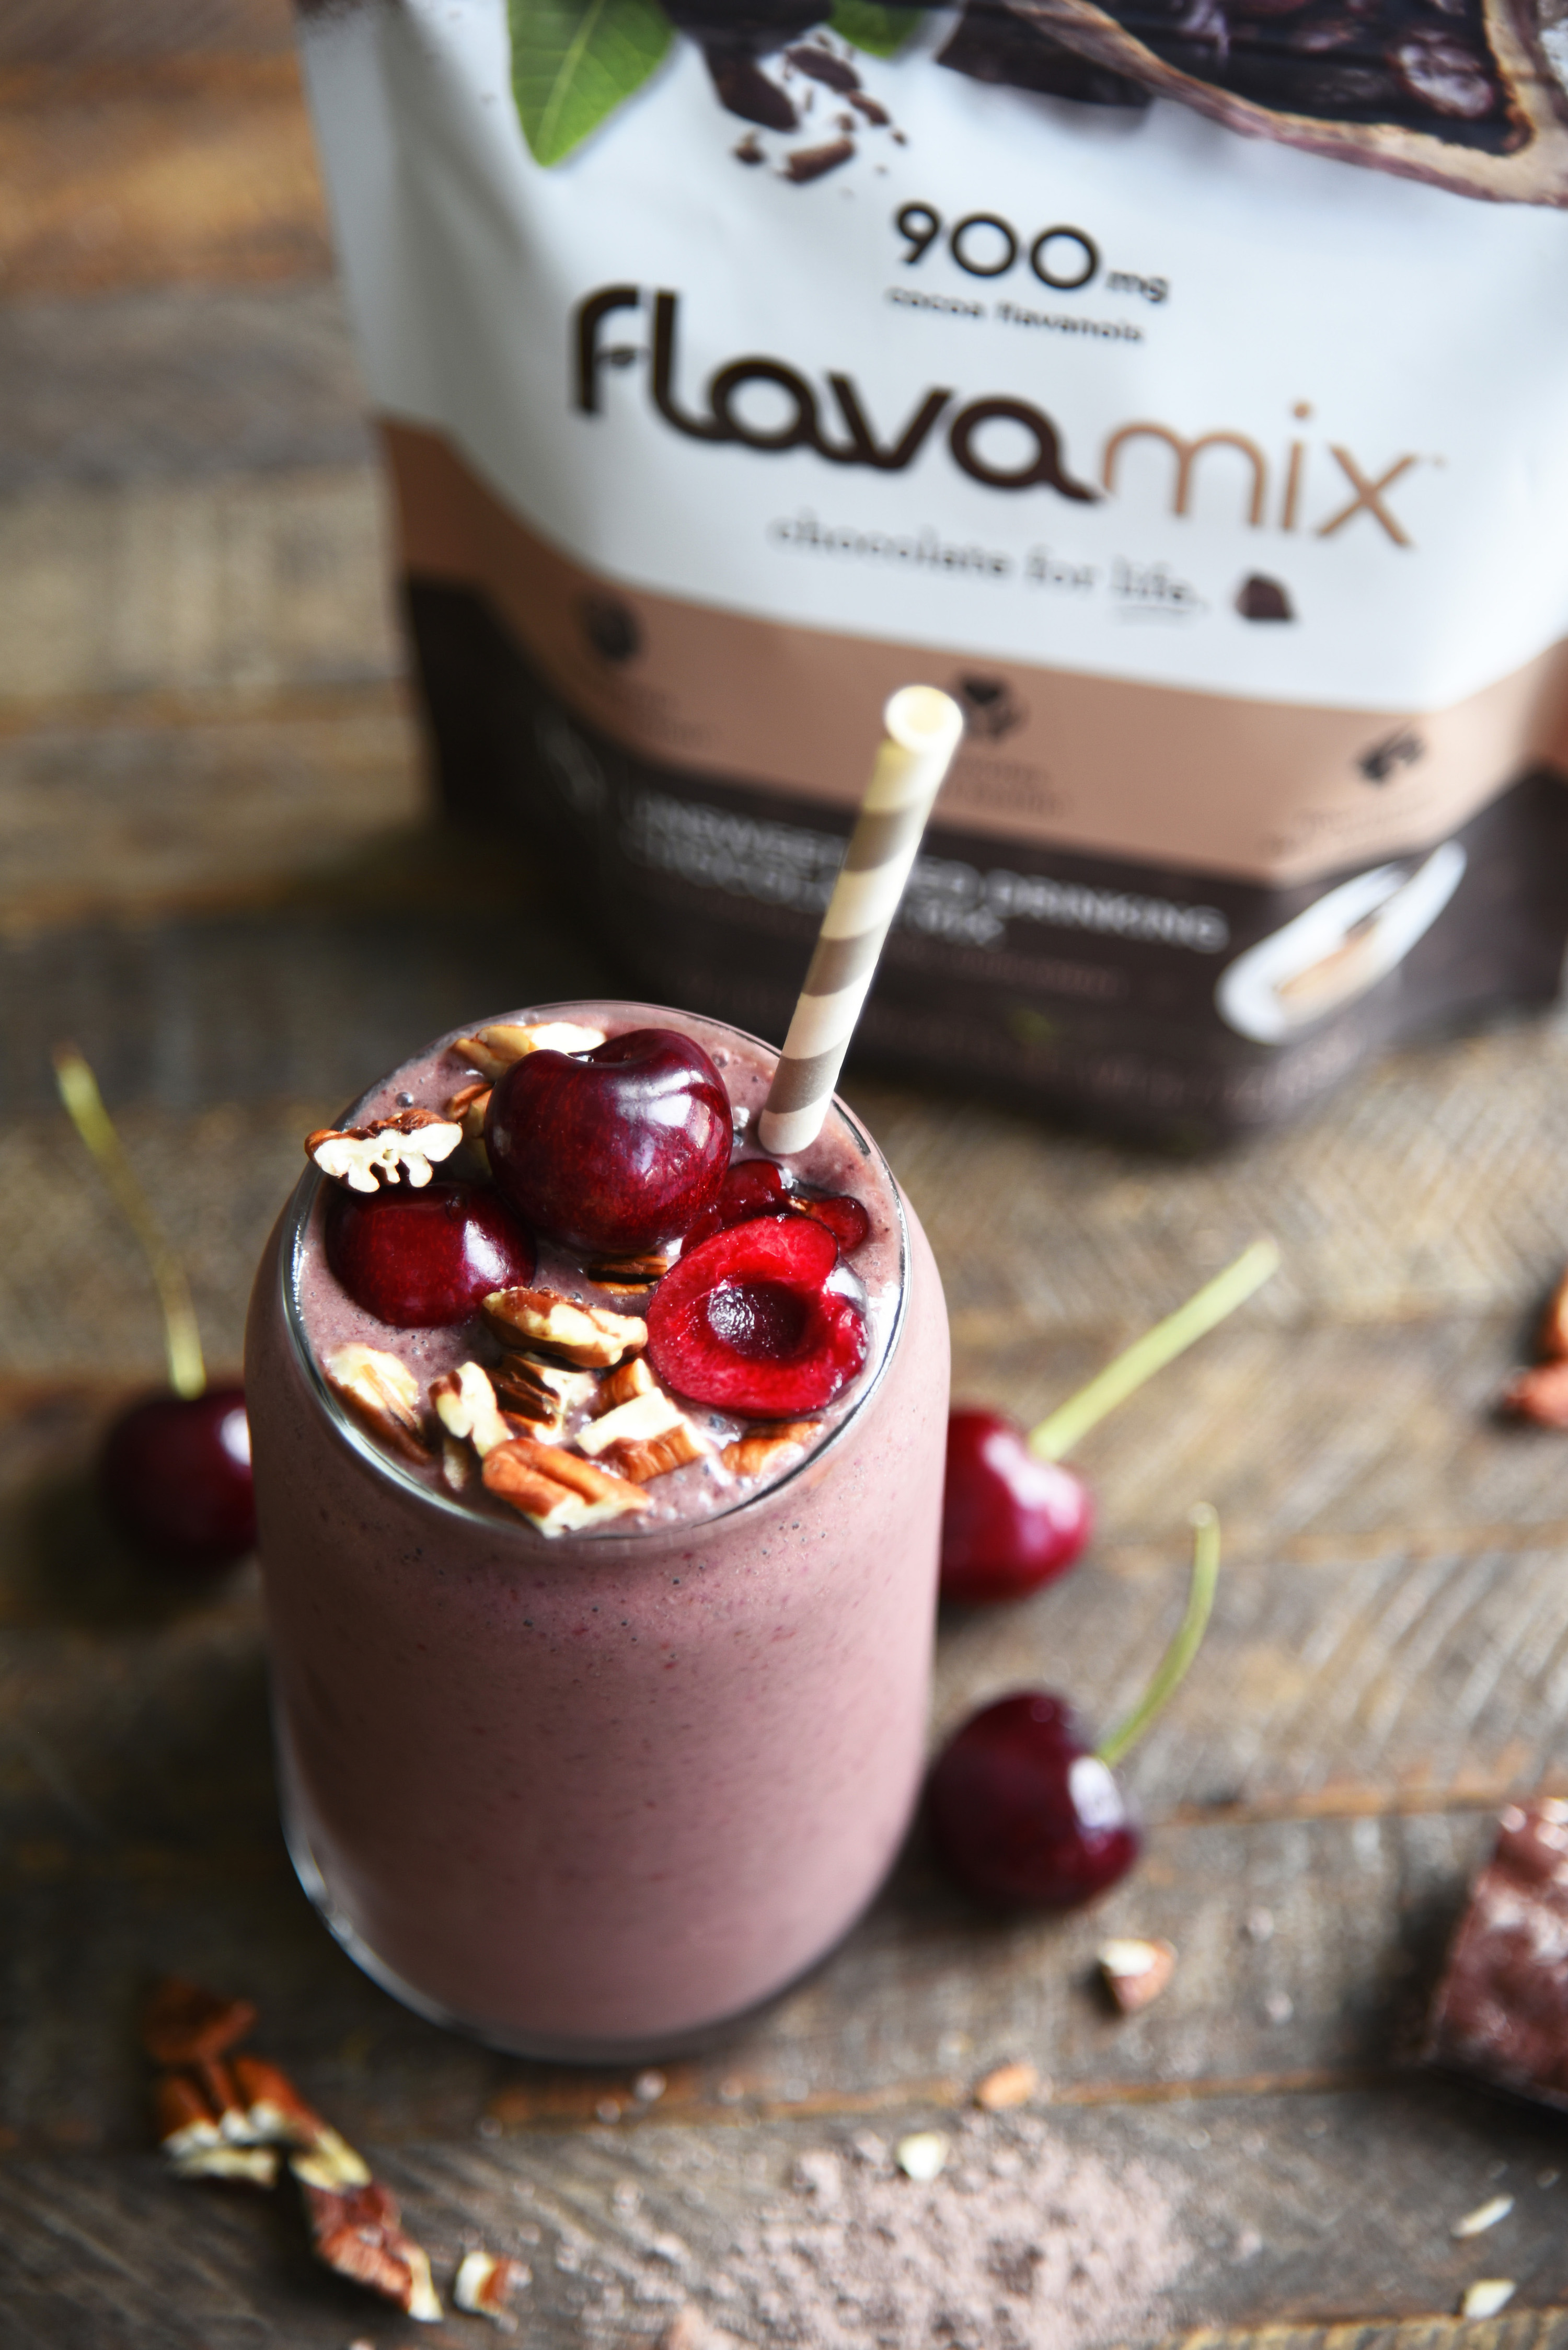 Chocolate Cherry Pecan Smoothie Recipe with FlavaMix Unsweetened Drinking Chocolate - 900mg Cocoa Flavanols